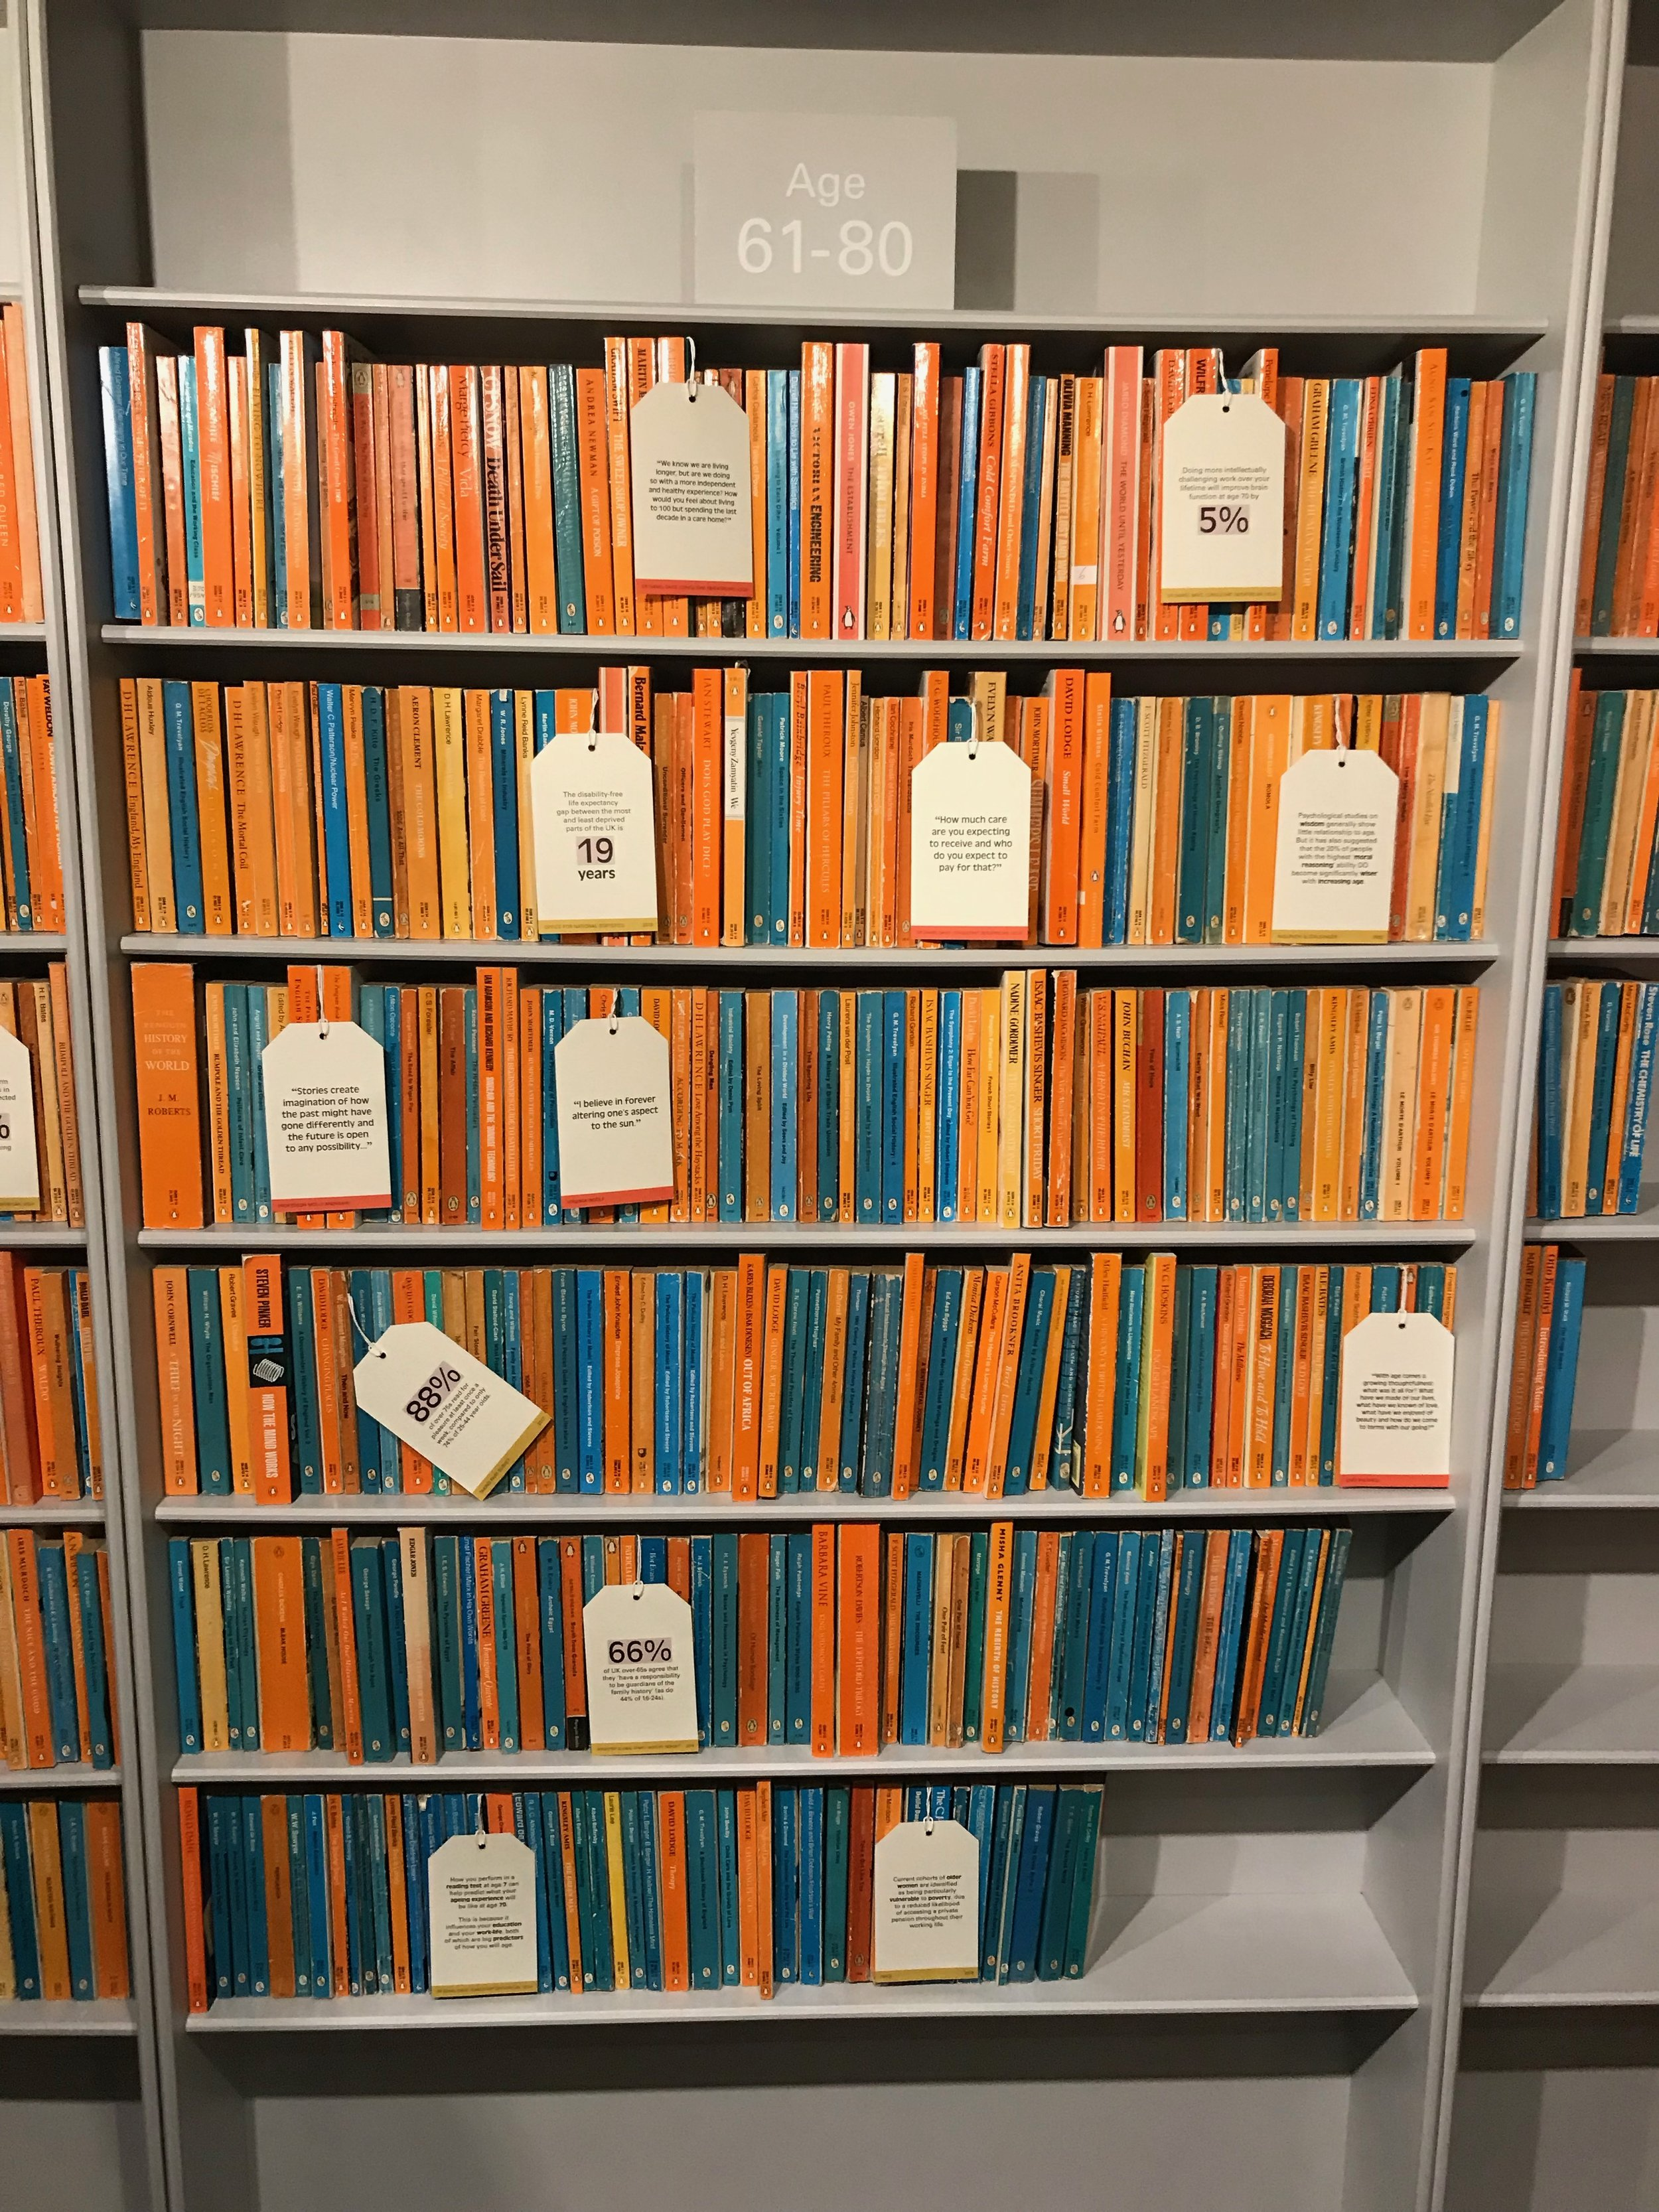 This was one section of a floor to ceiling bookcase covering one whole wall of the exhibition space. The orange books represent the percentage of healthy people in the 61-80 age group, the books with blue spines show the percentage with illness. They're arranged from the wealthiest sectors of society at the top to the poorest at the bottom